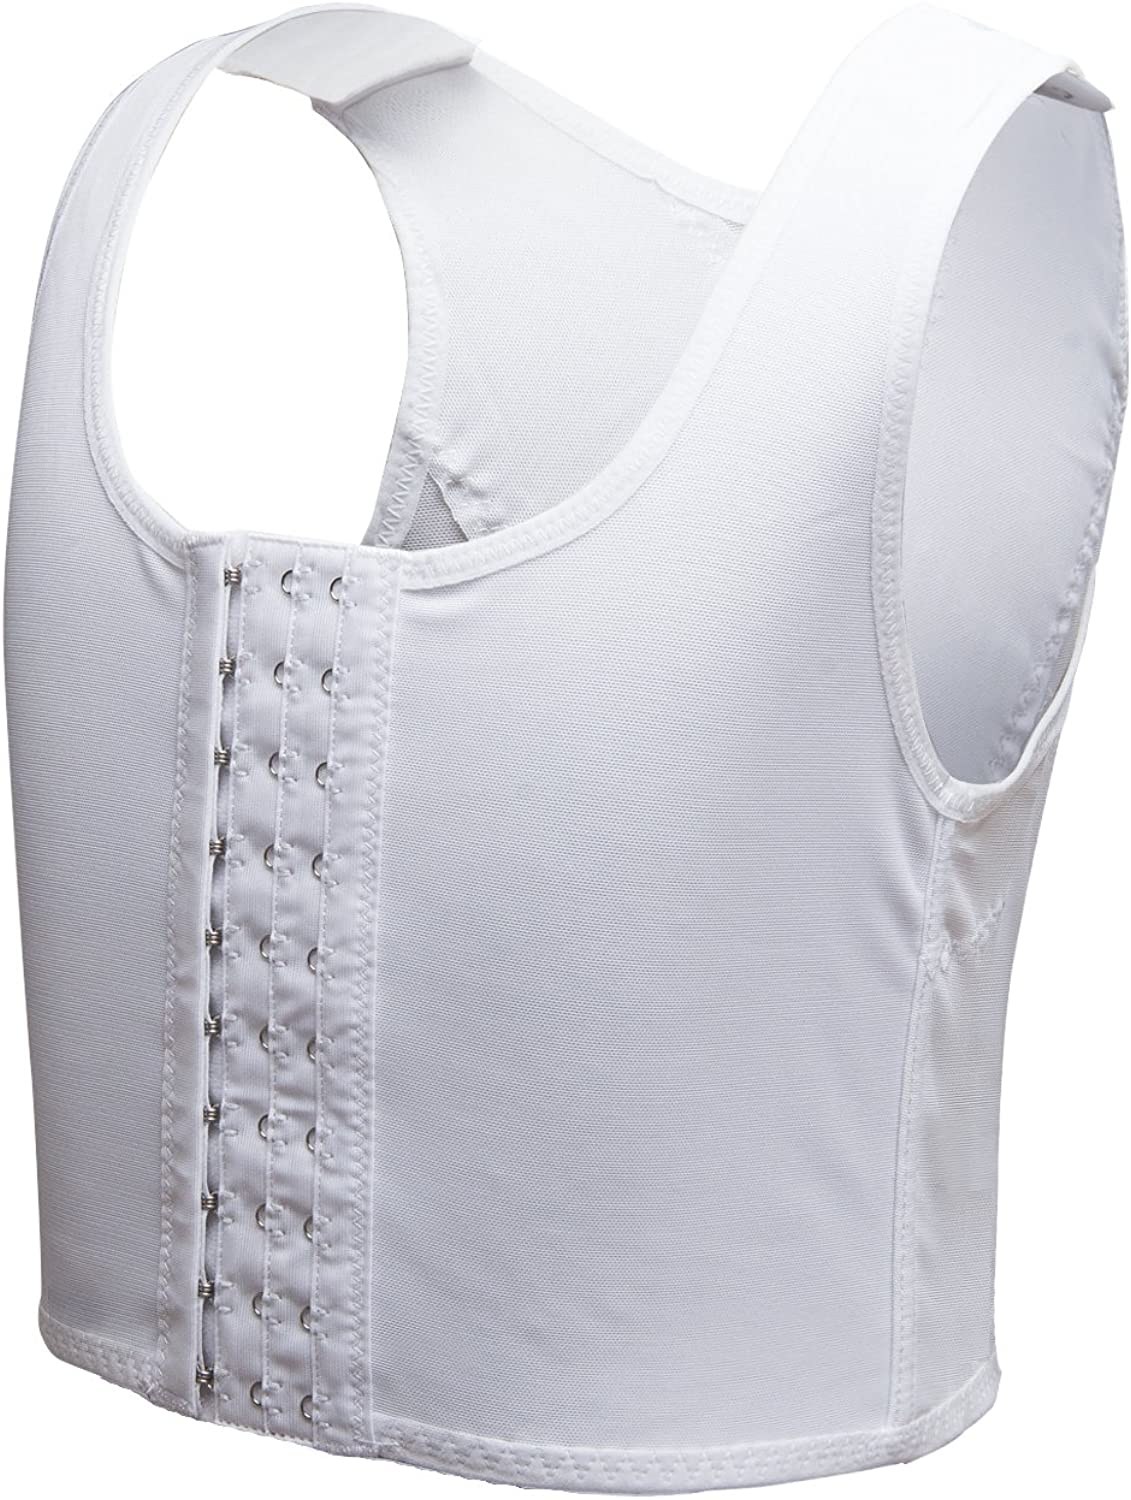 Lesbian Breathable Super Flat Les Compression 3 Rows Central Clasp Chest Binders